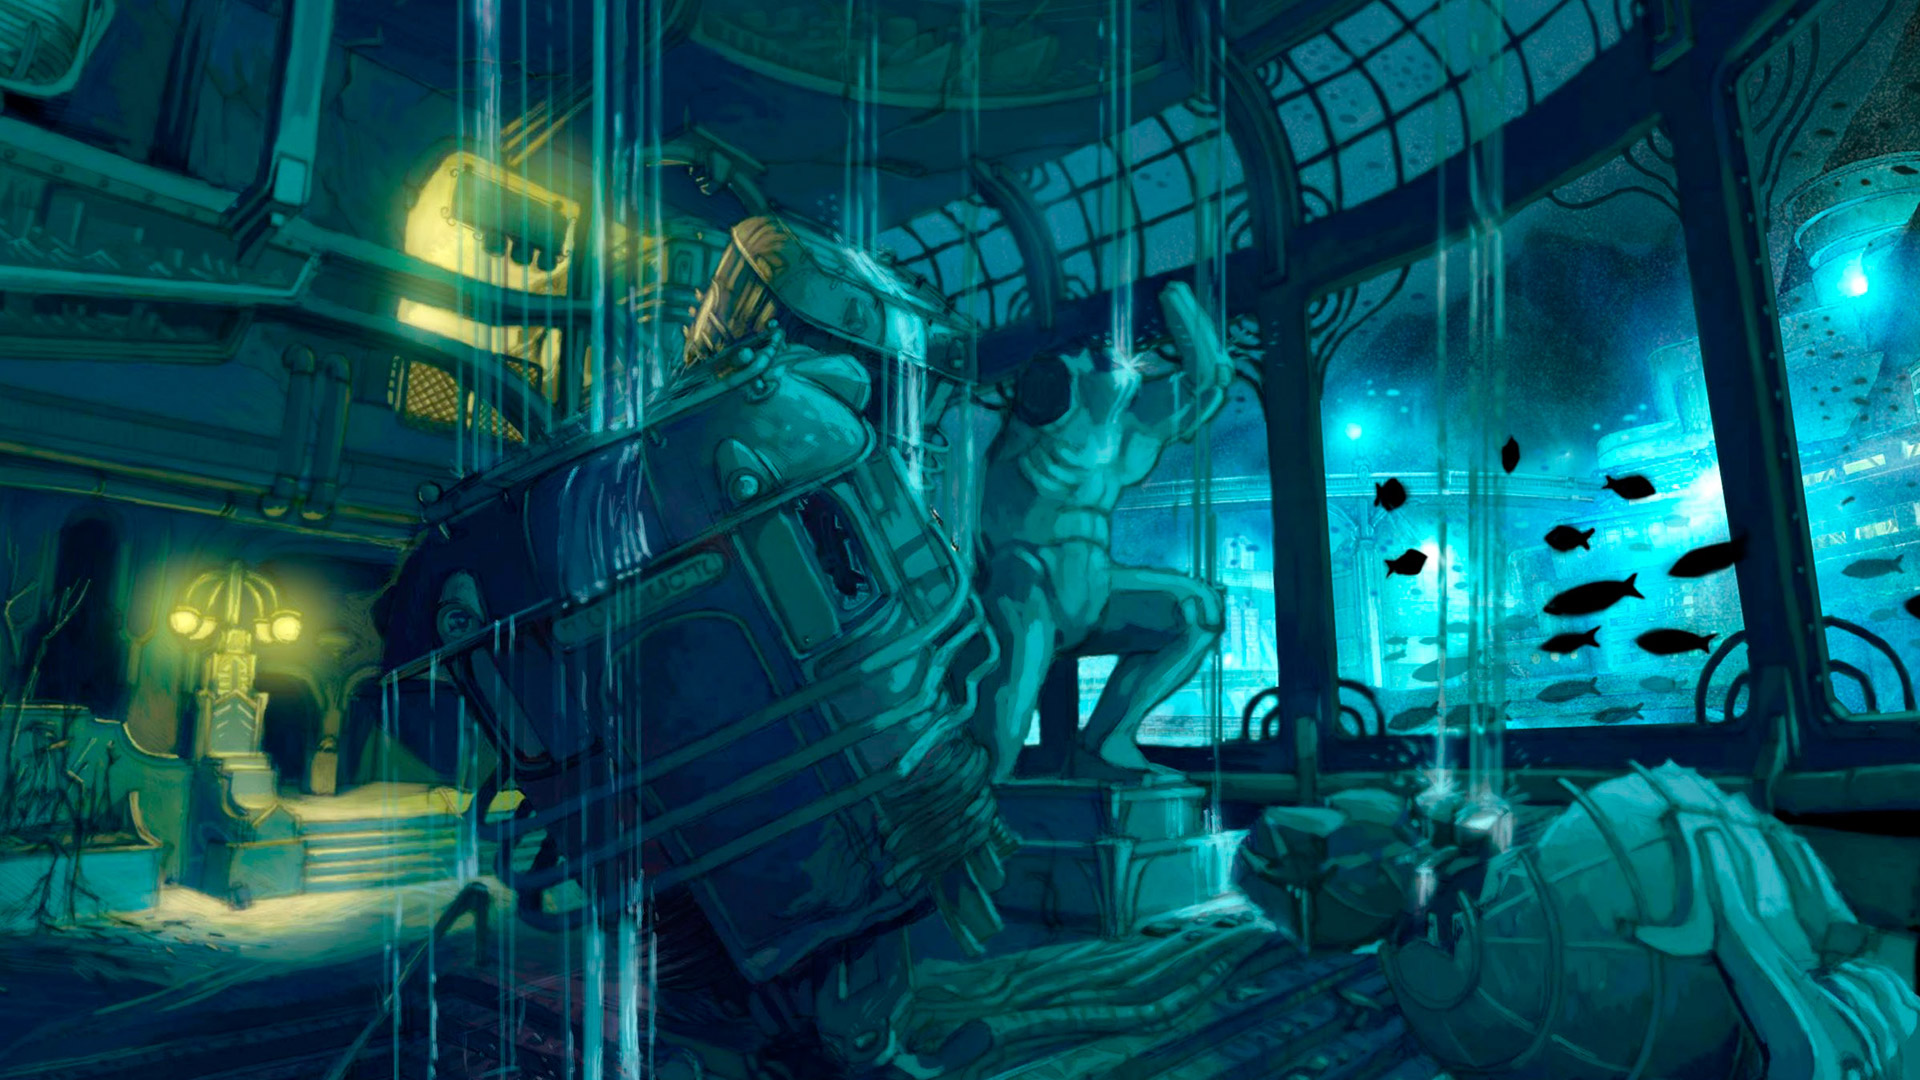 Bioshock Wallpaper 1